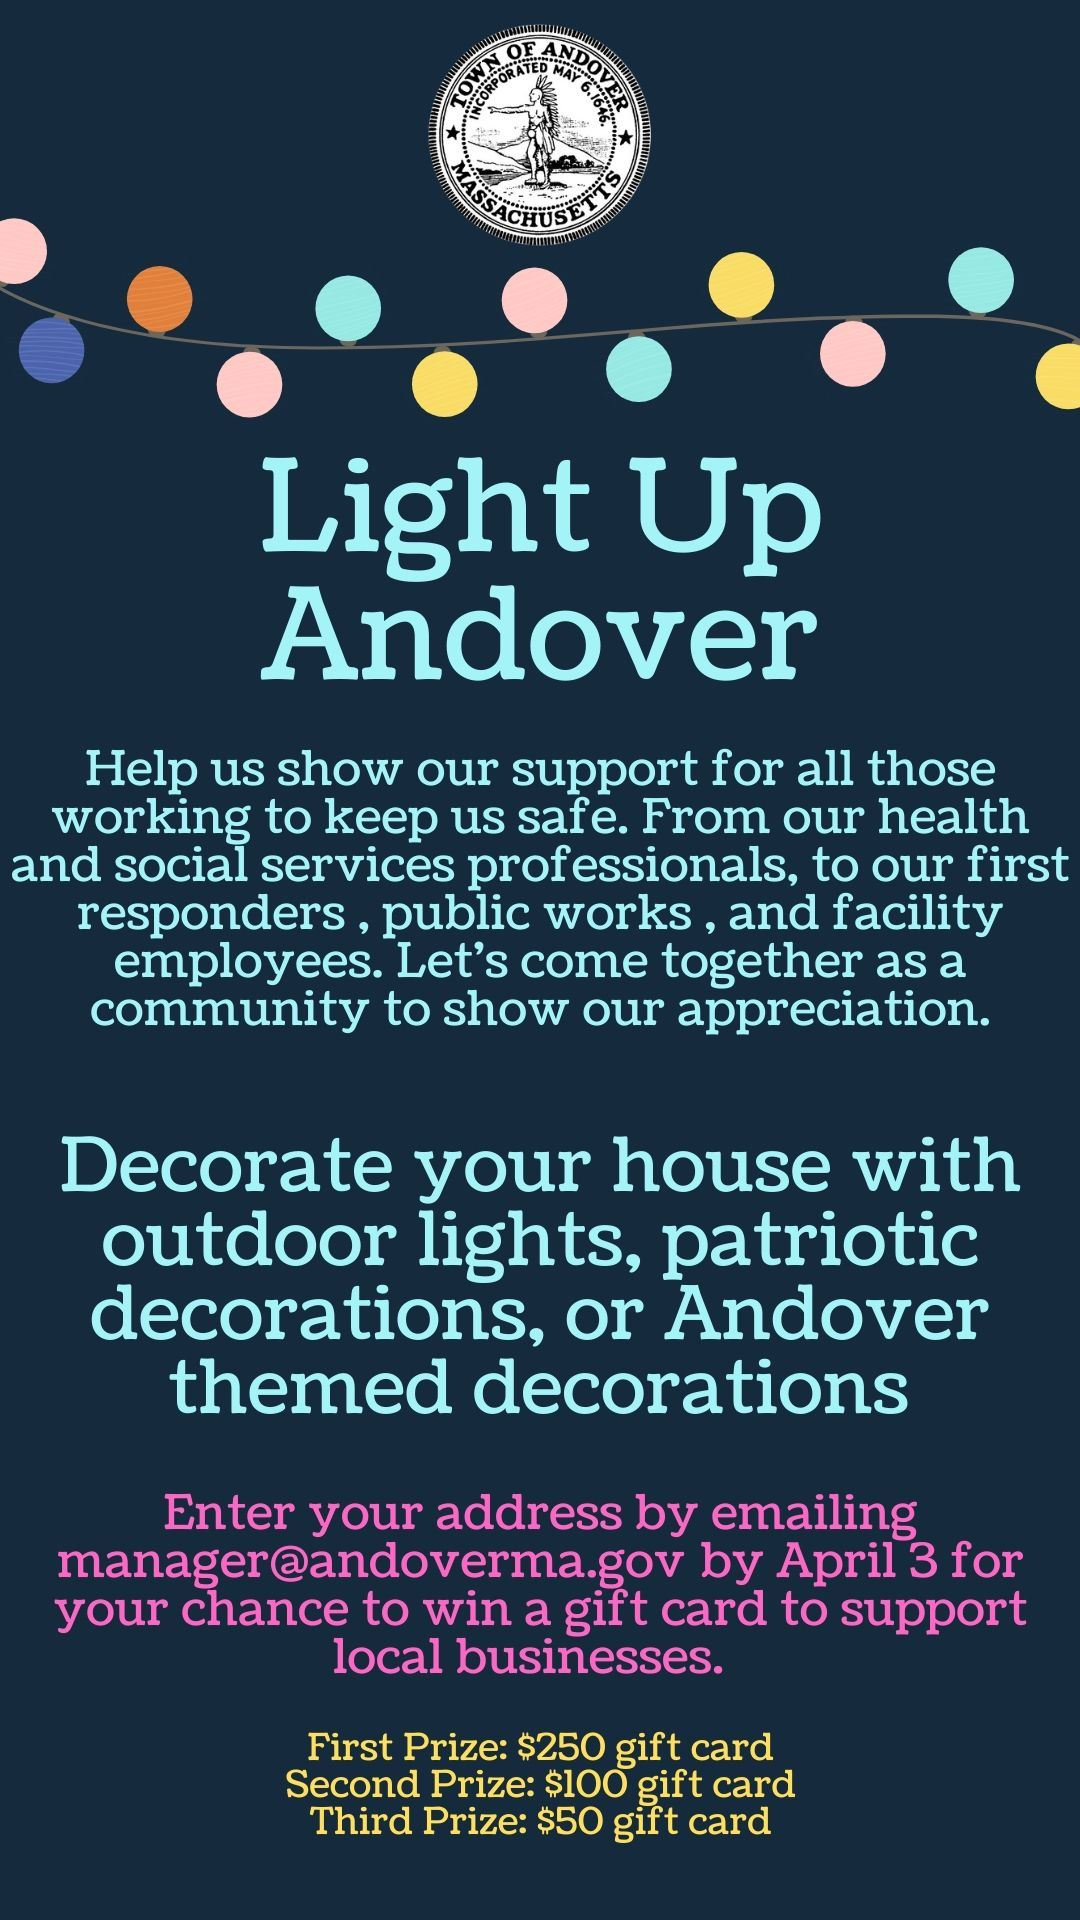 light up andover